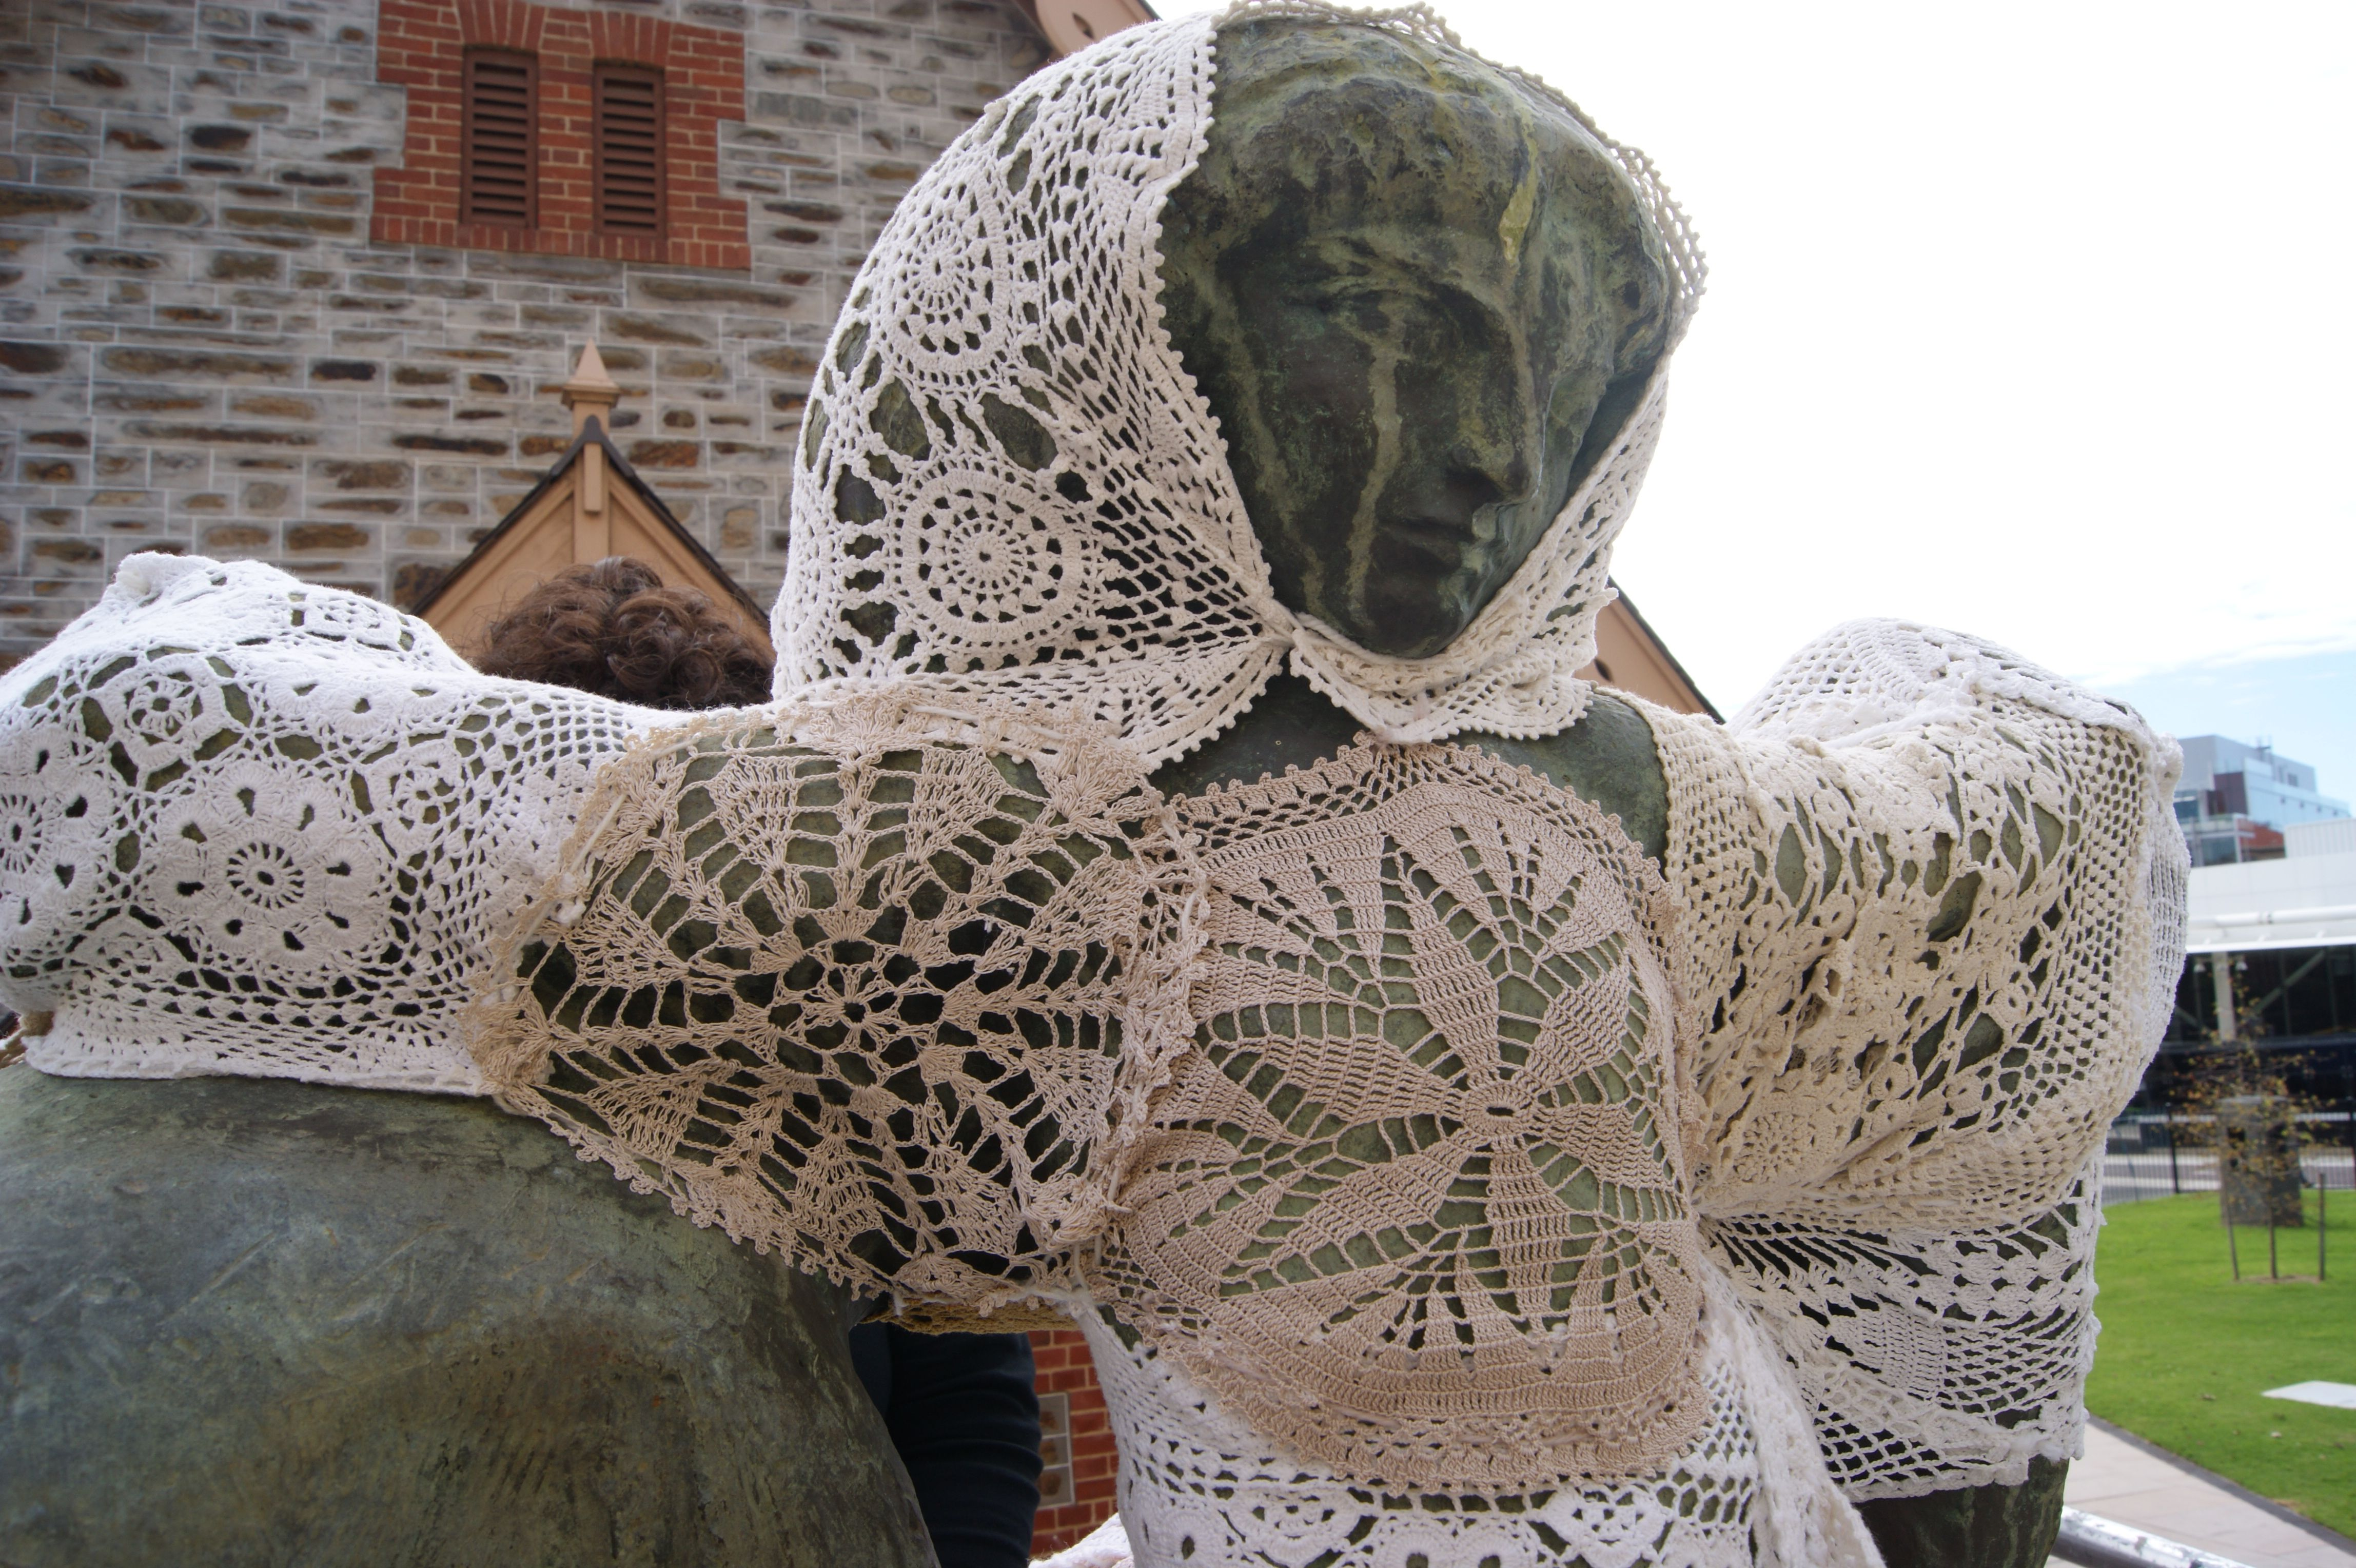 Crochet Patterns For Yarn Bombing : YARN BOMBED STATUE ADORNED IN LACE YARN BOMBING